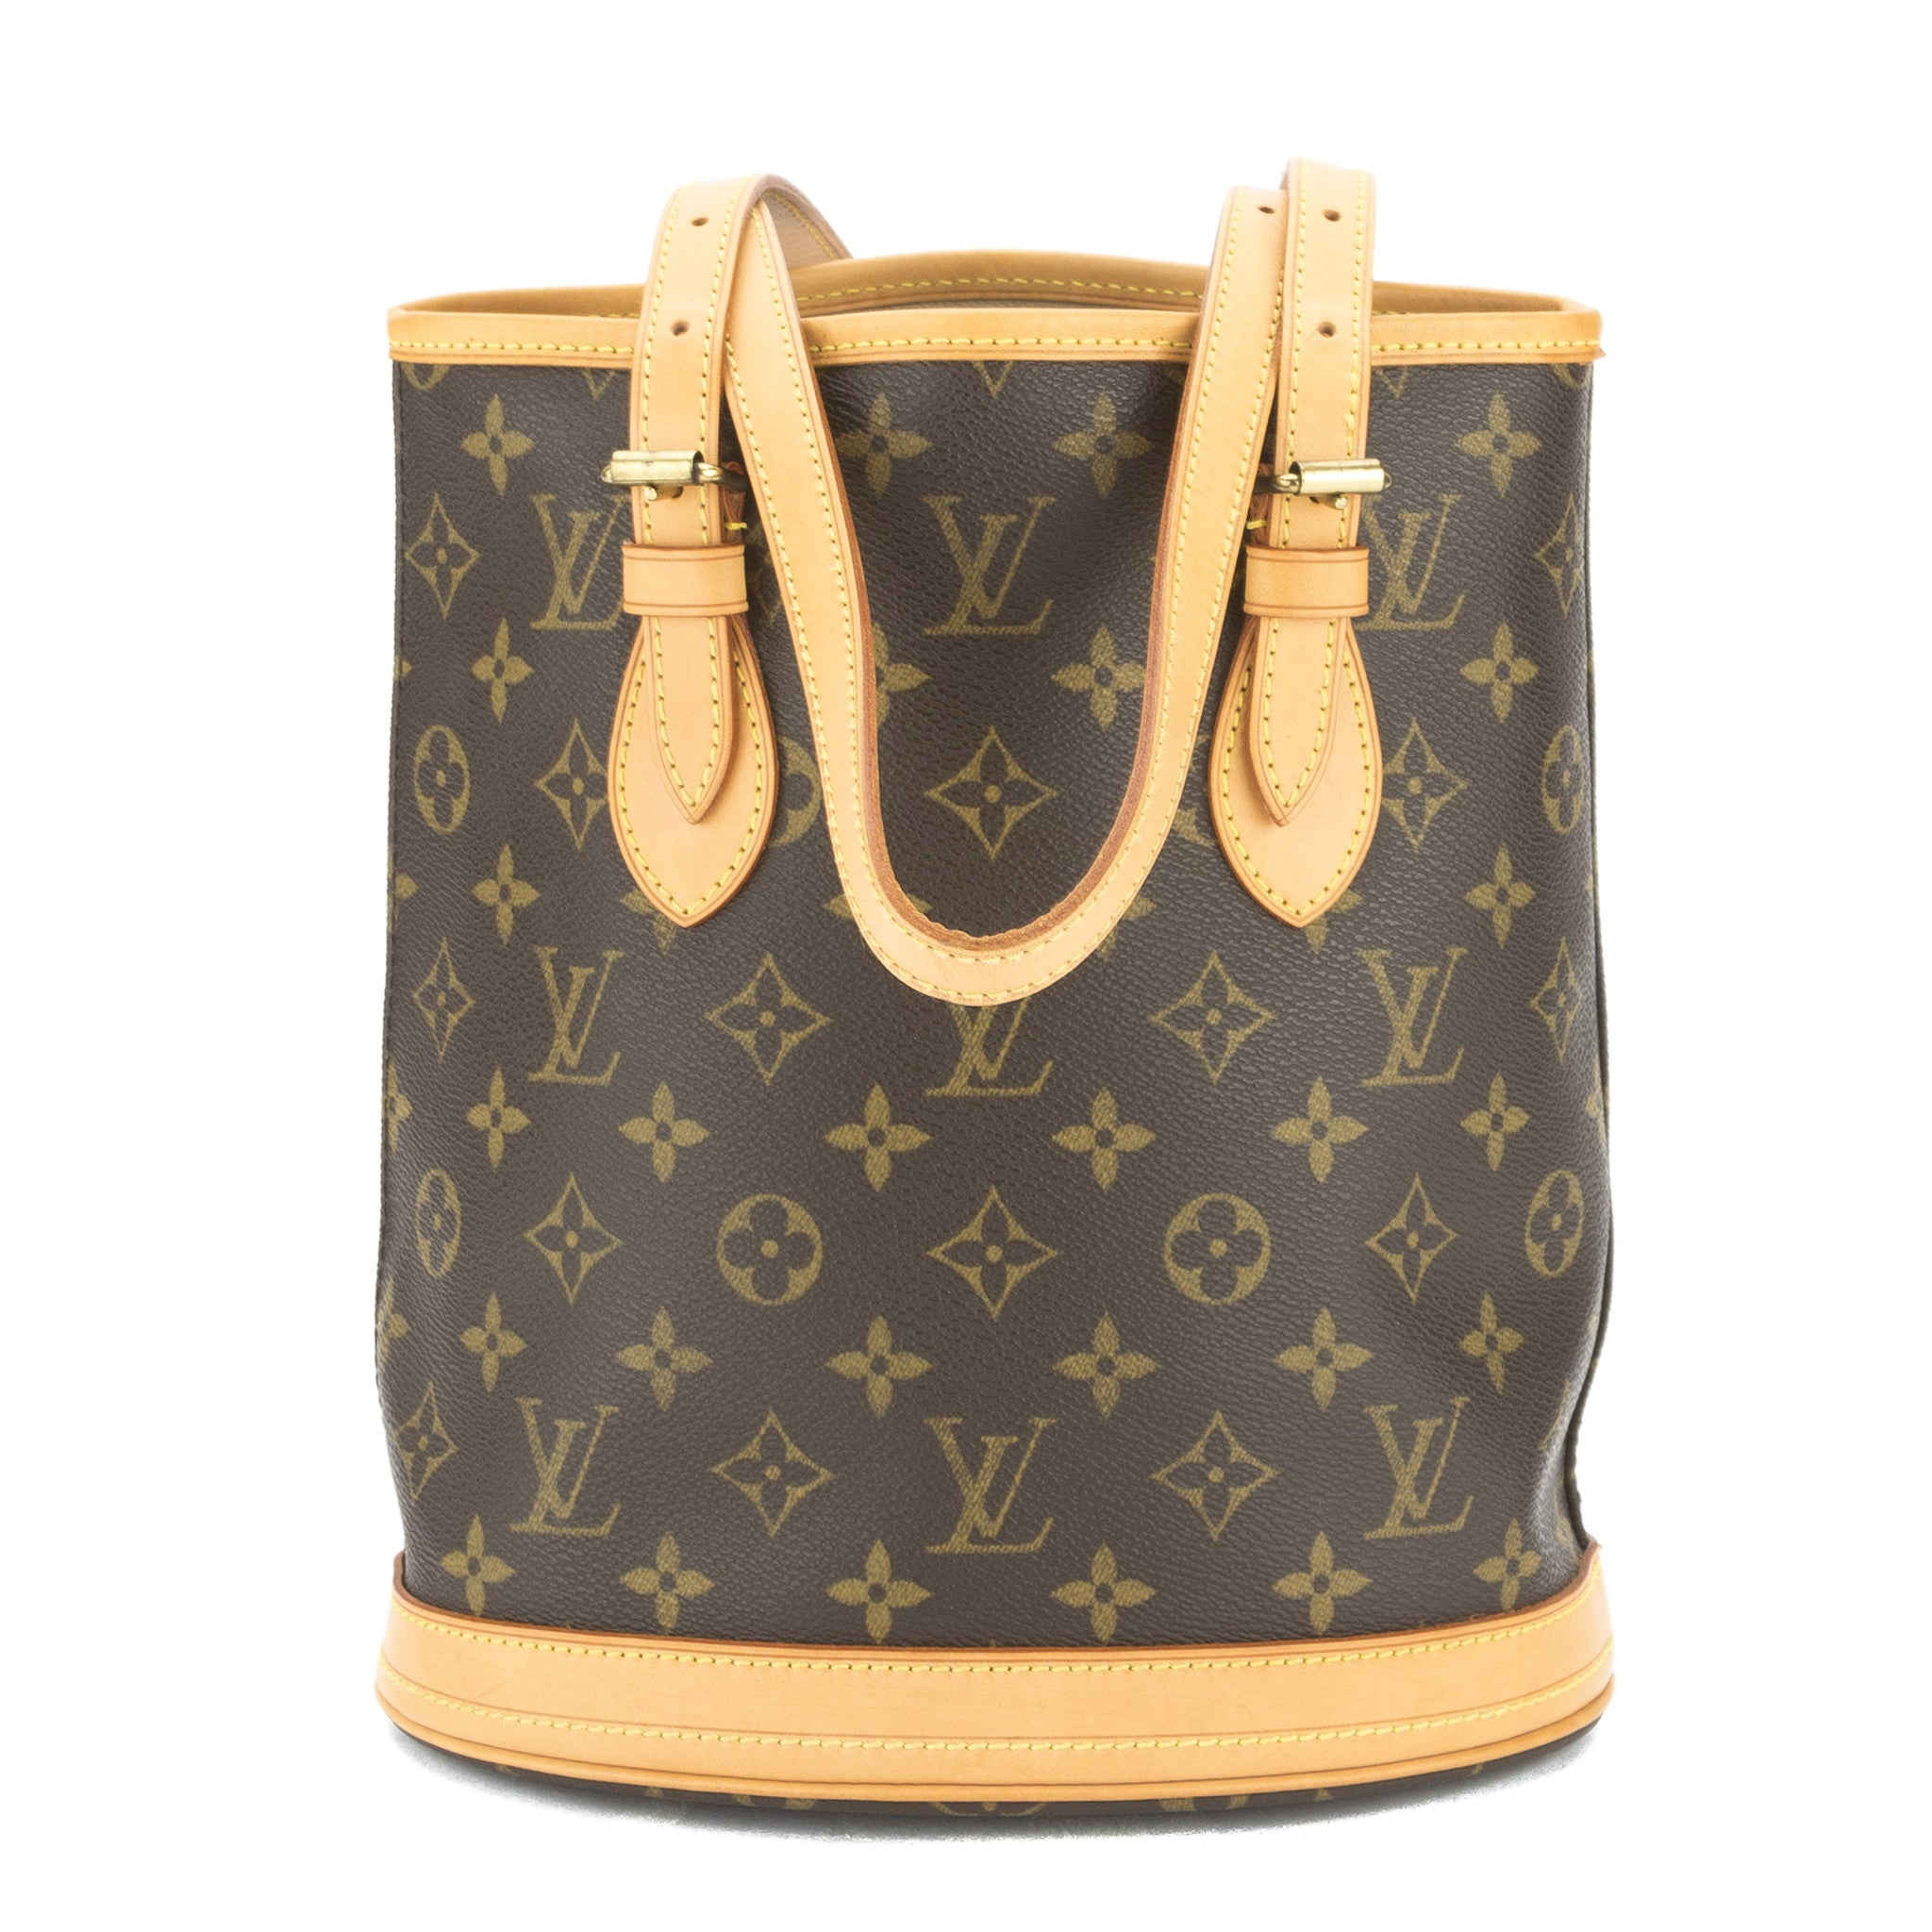 dda119513d1d Louis Vuitton Monogram Bucket PM Bag (Pre Owned) - 2875001